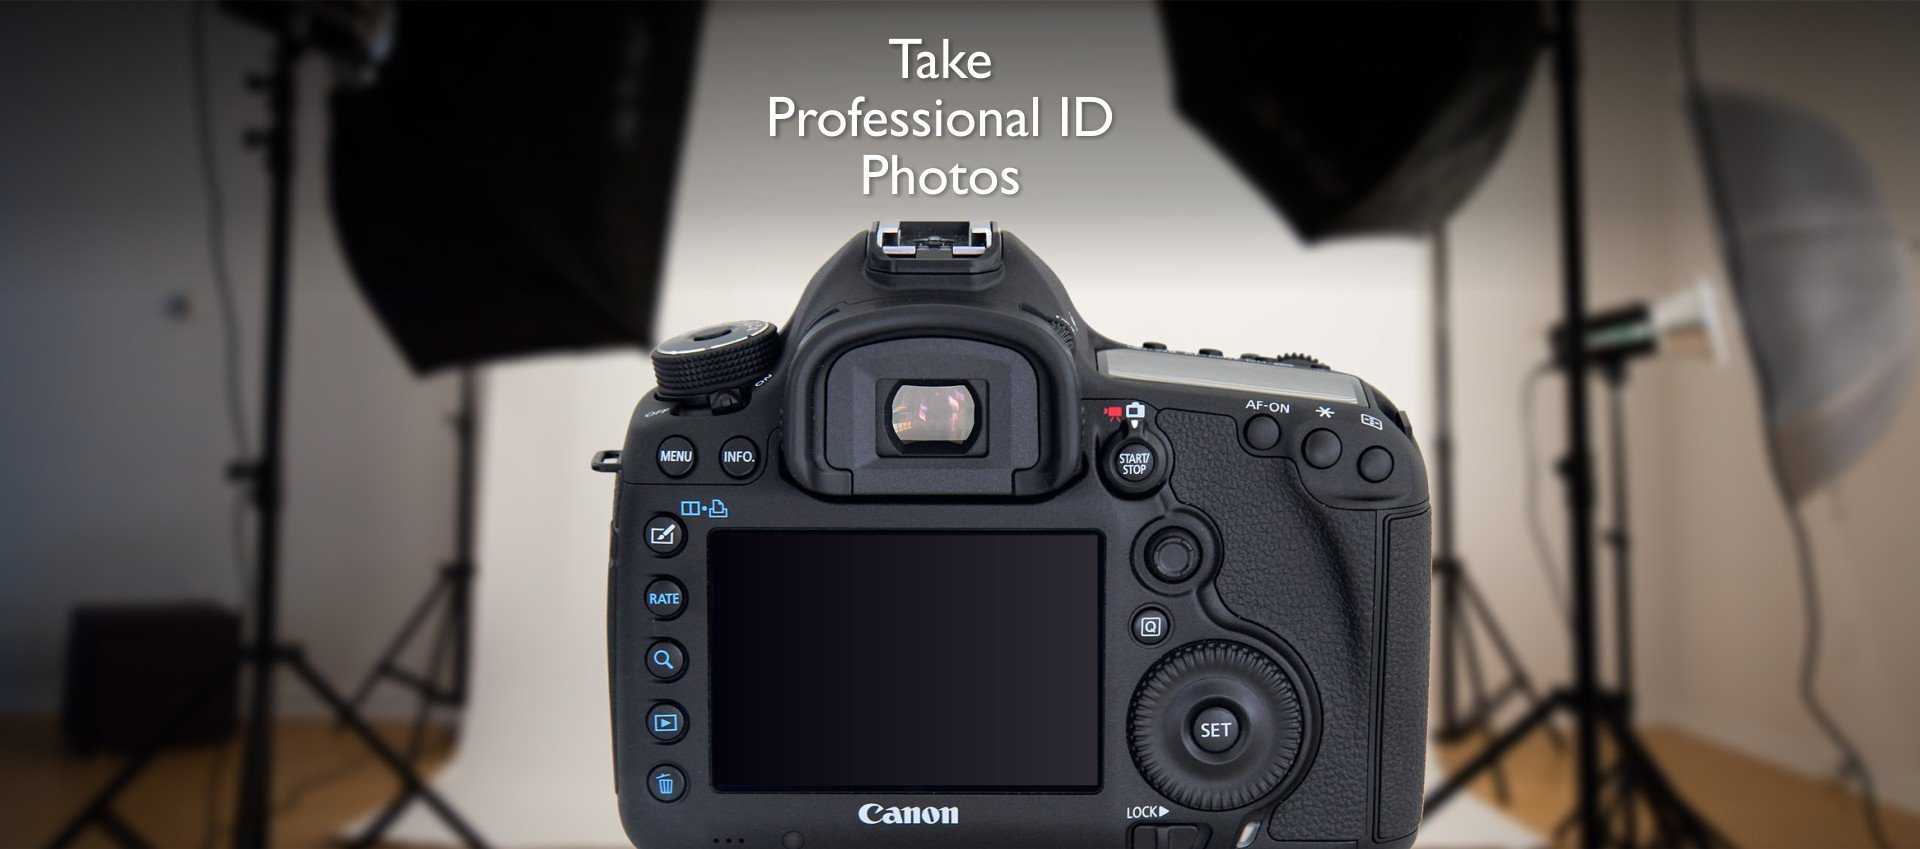 Taking ID Card PHotos: Tips